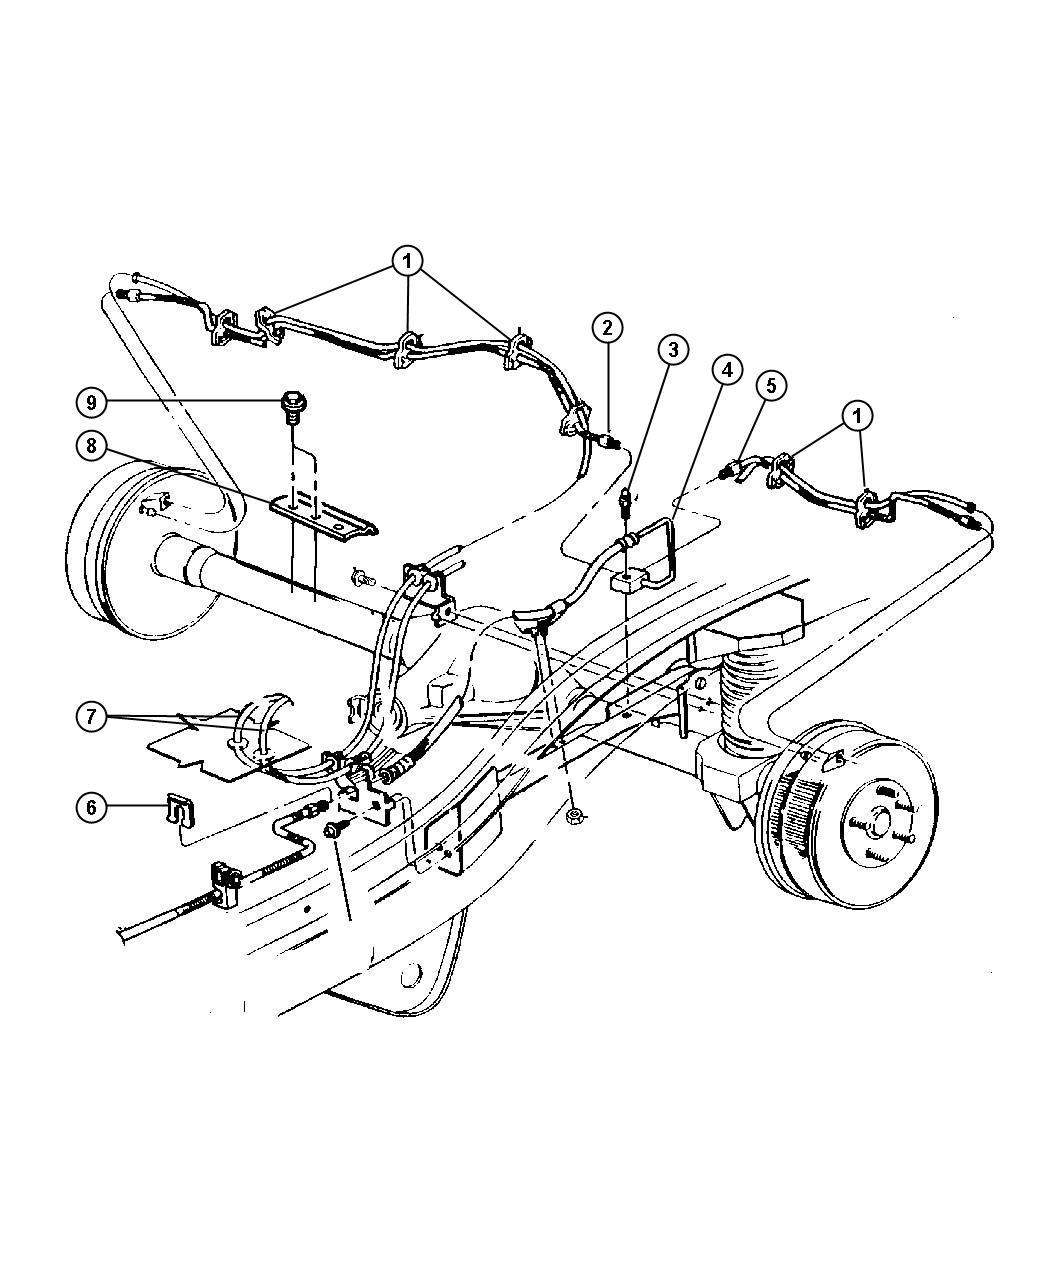 Wiring Diagram For A 2001 Dodge Ram on 1990 f150 fuel pump wiring diagram